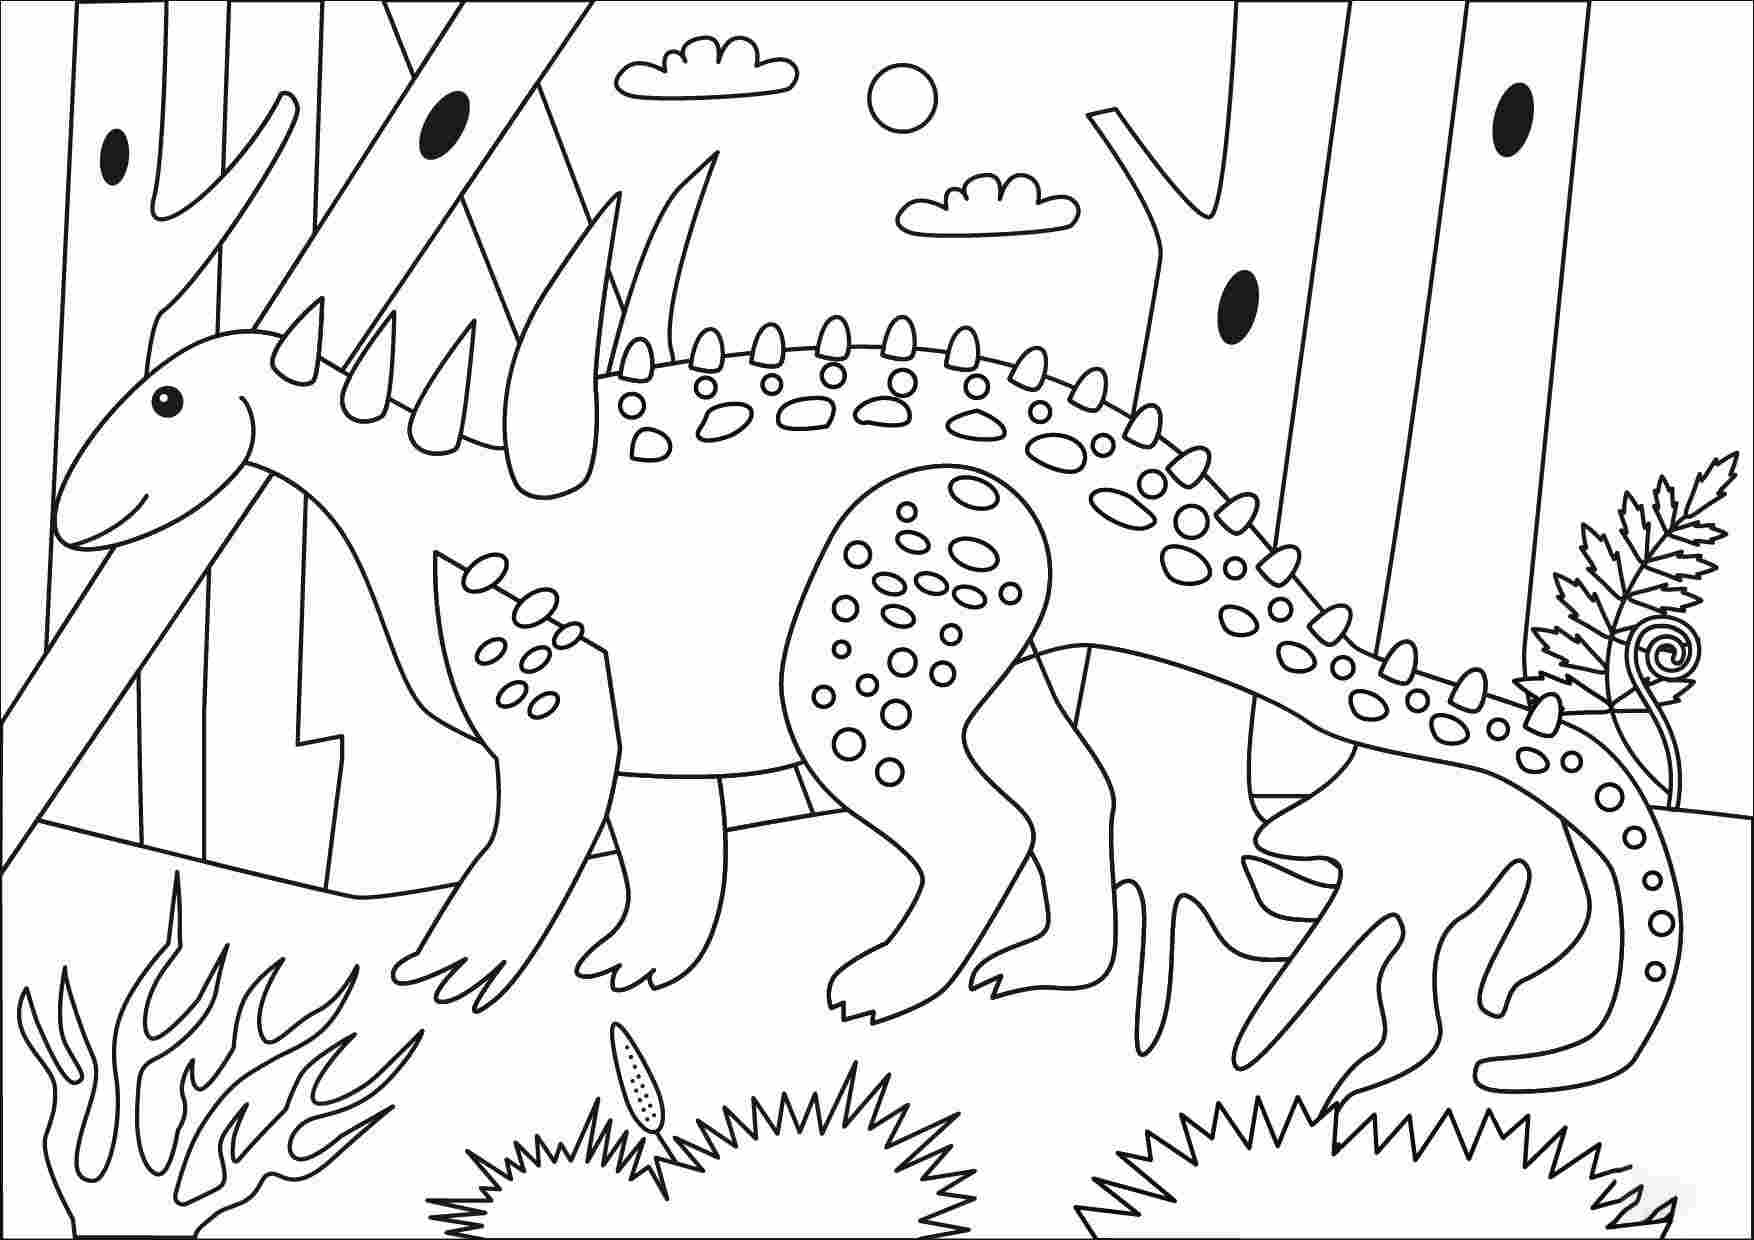 Sauropelta also had unique spikes on its neck Coloring Page